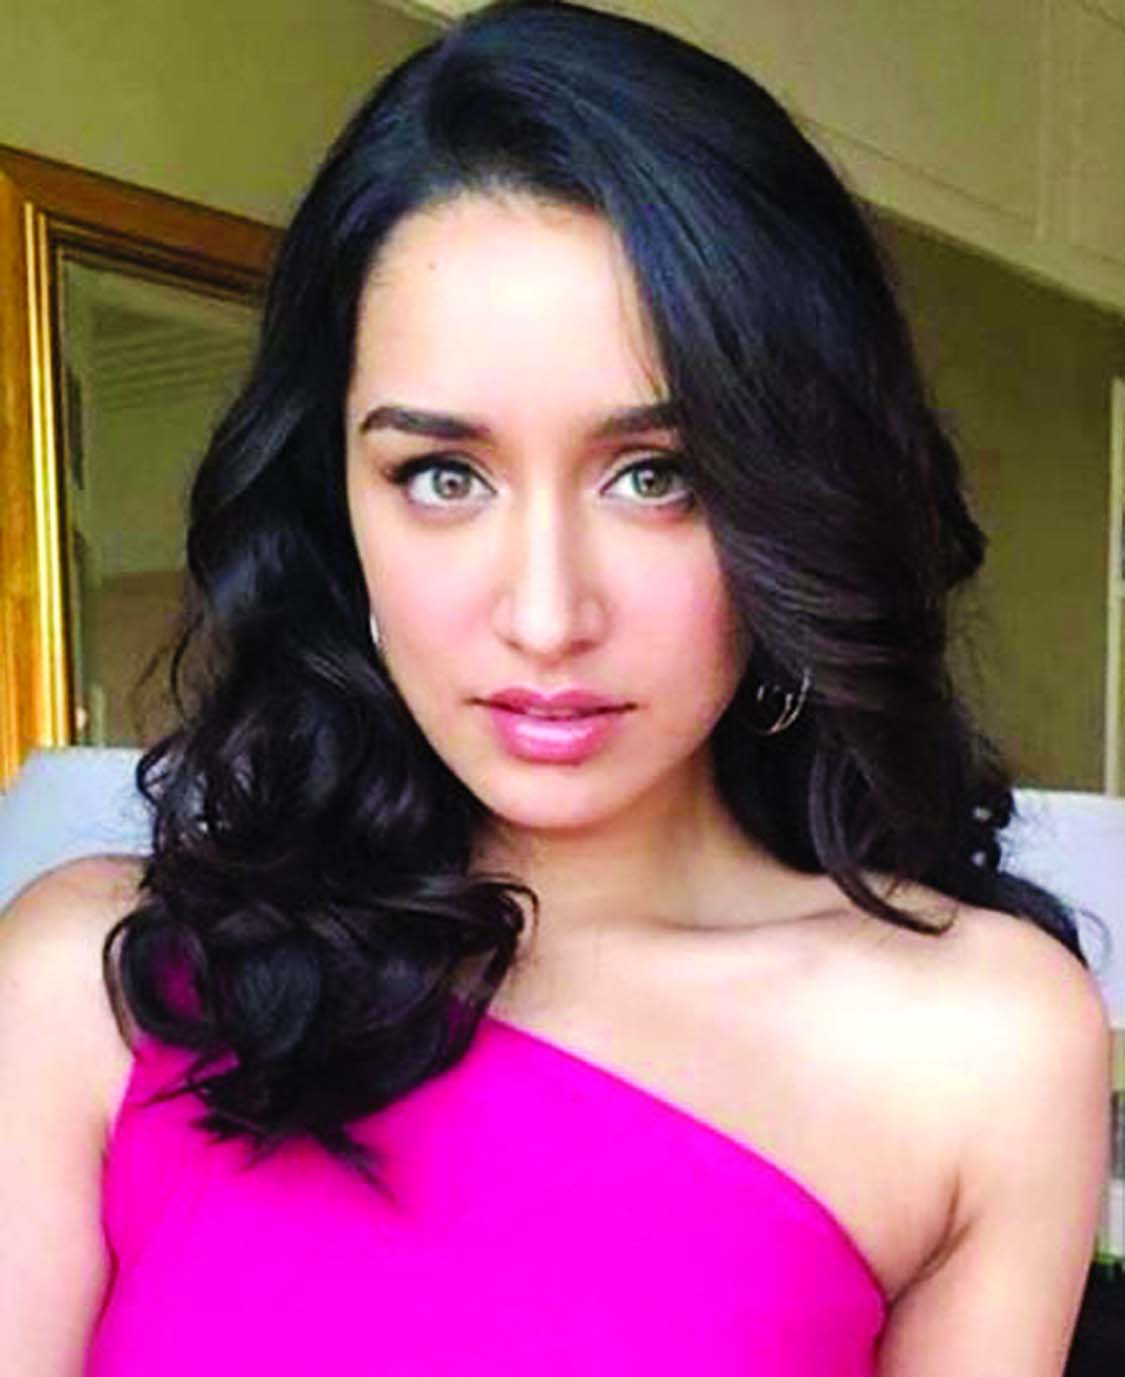 When Shraddha Kapoor became a real-life inspiration for a fan